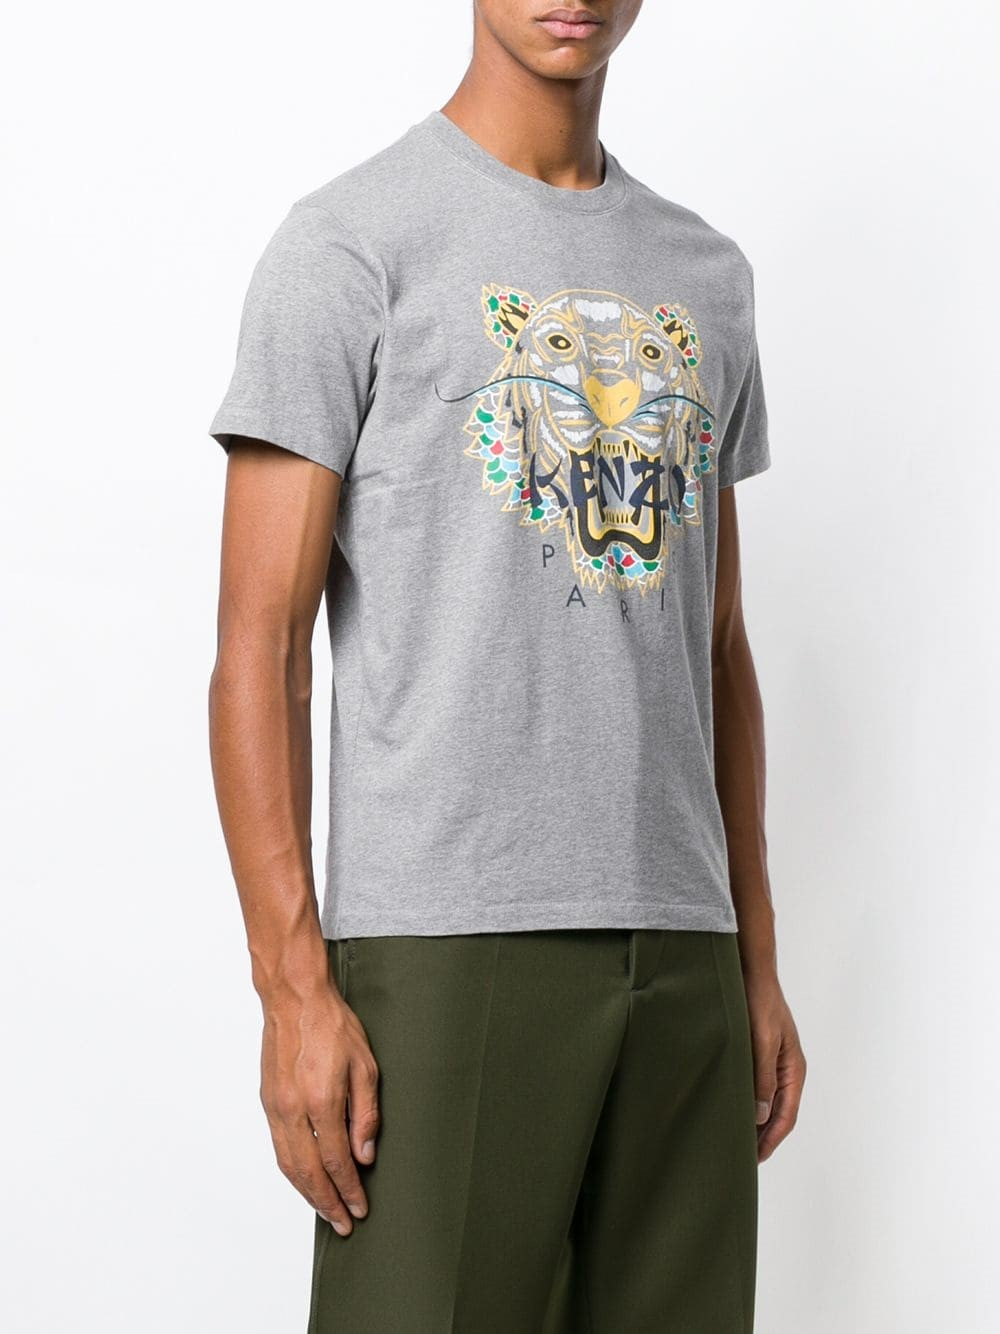 fe0fd1e5 kenzo TIGER T-SHIRT available on montiboutique.com - 25546